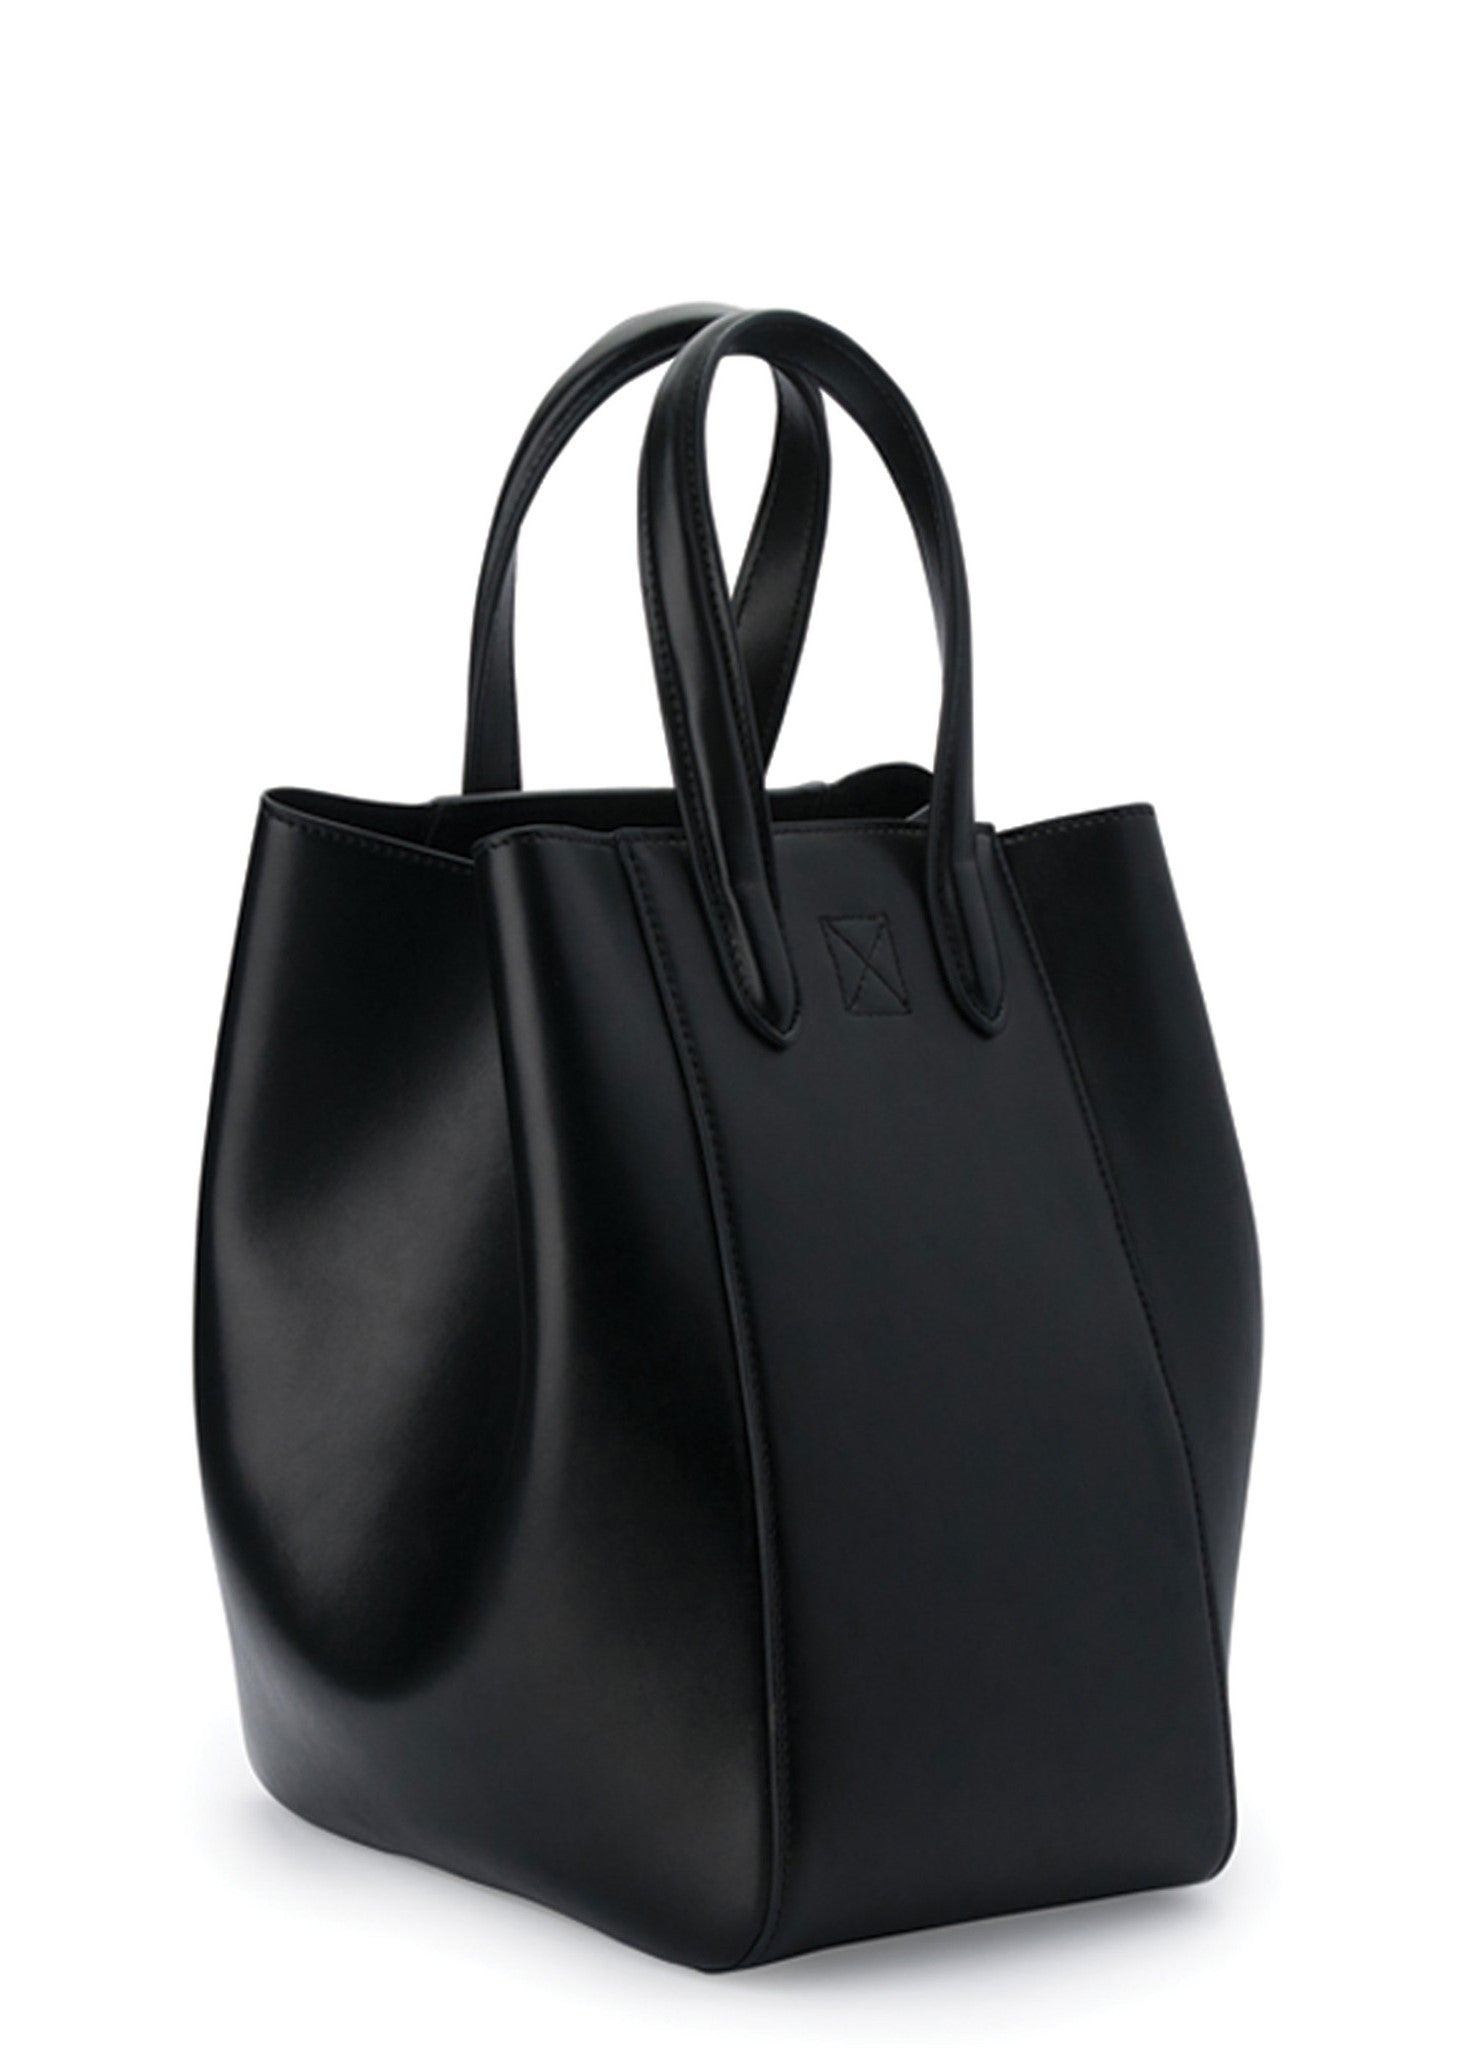 Xnihilo eight bag black